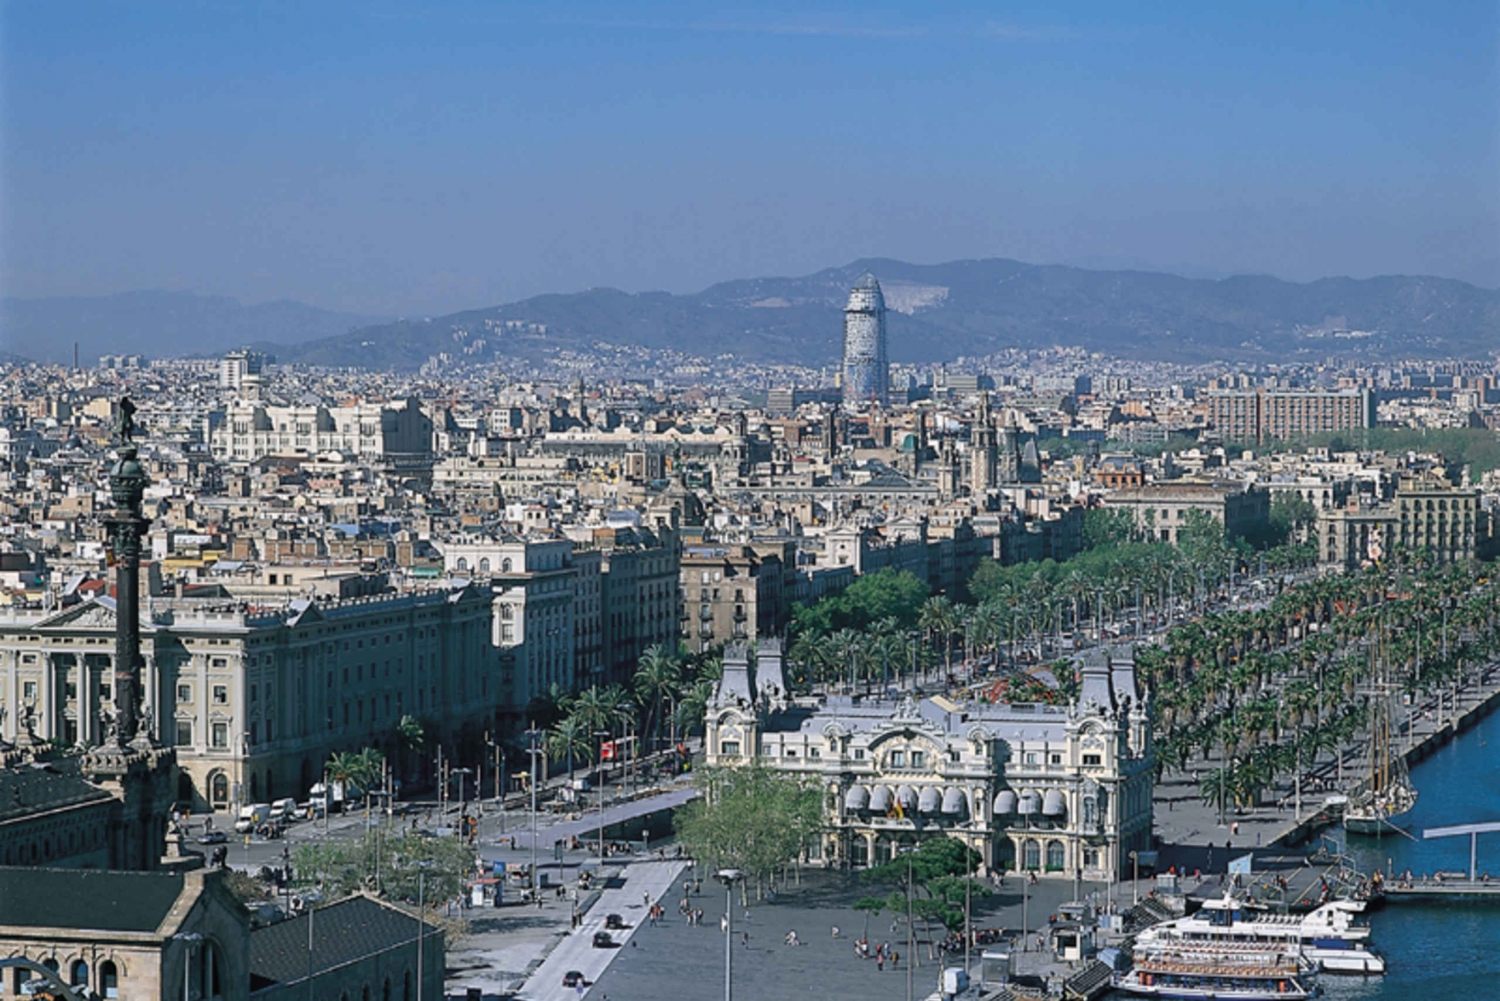 Barcelona: Andalusia & Mediterranean Coast 6 Day Tour